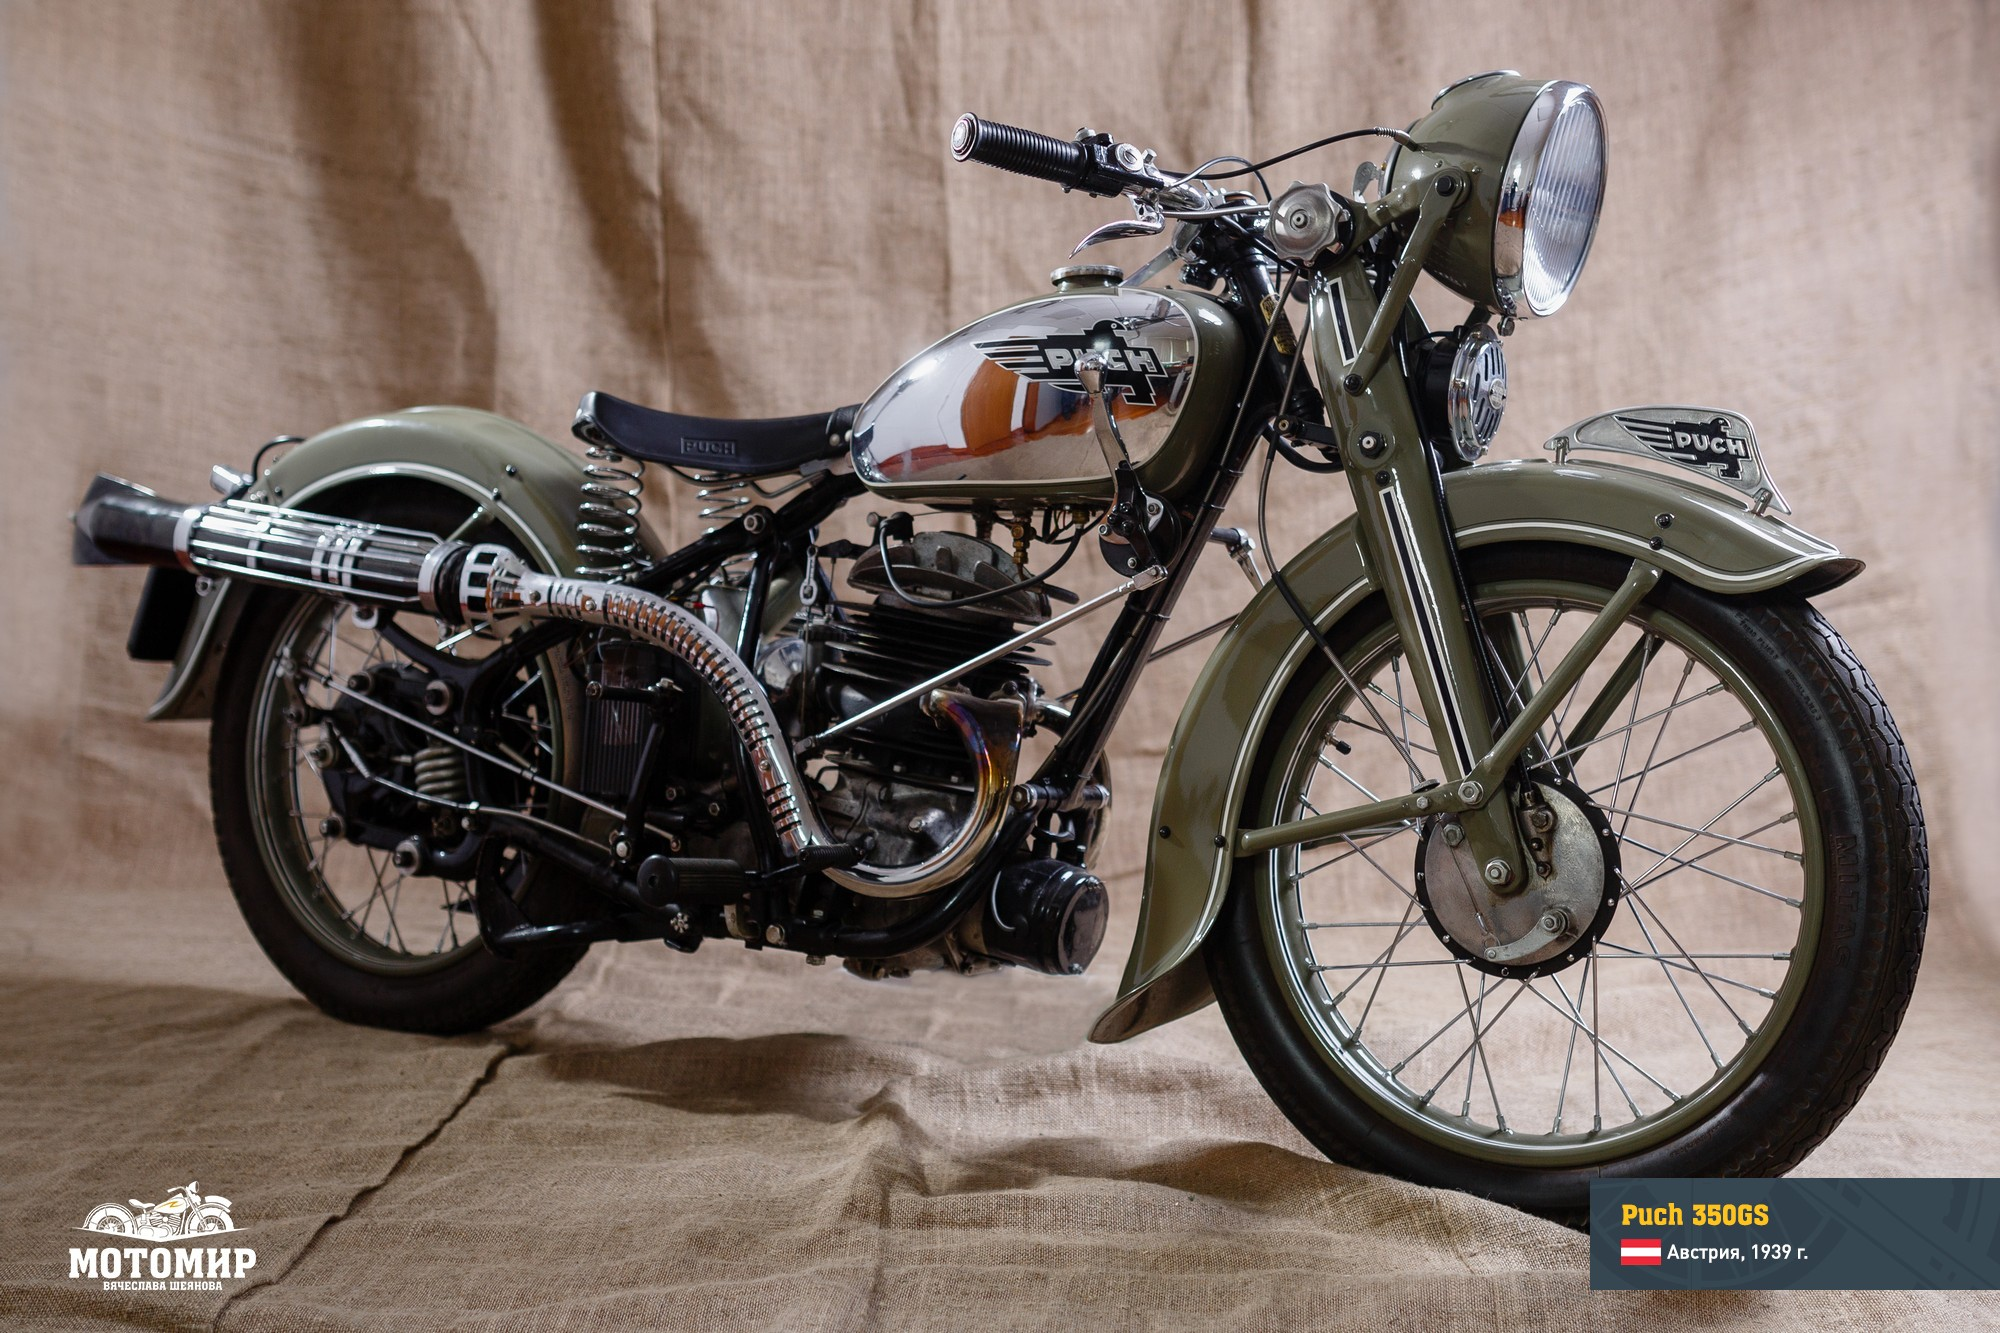 puch-350gs-201601-web-08